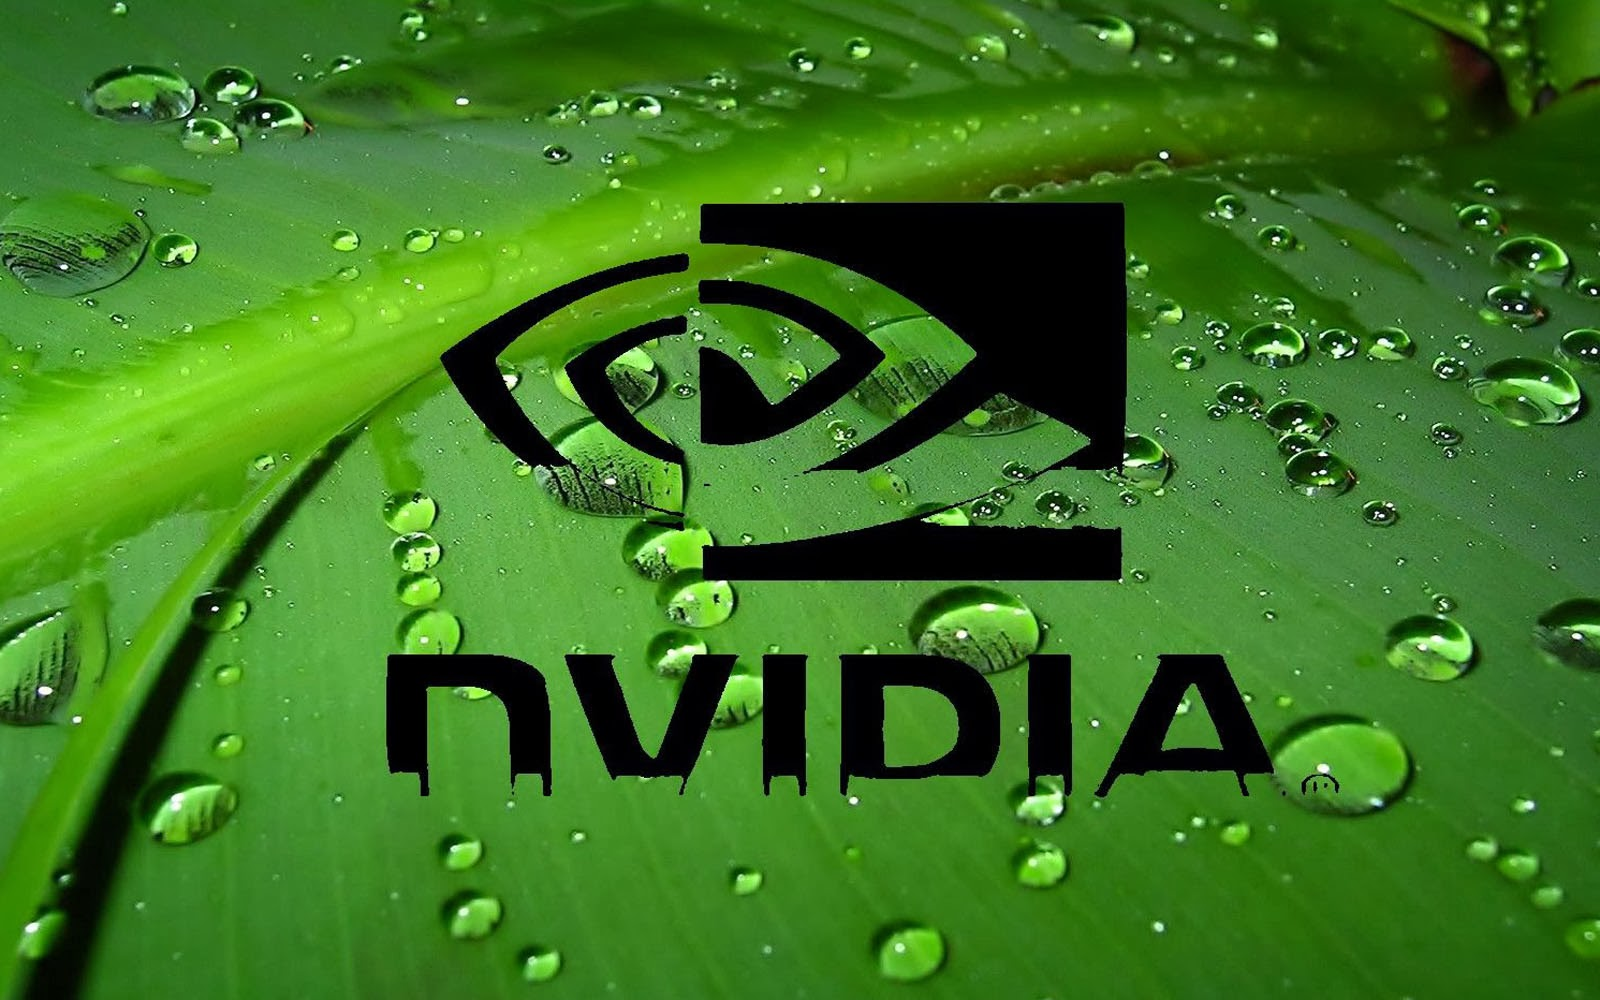 wallpapers: Nvidia Wallpapers - 223.5KB